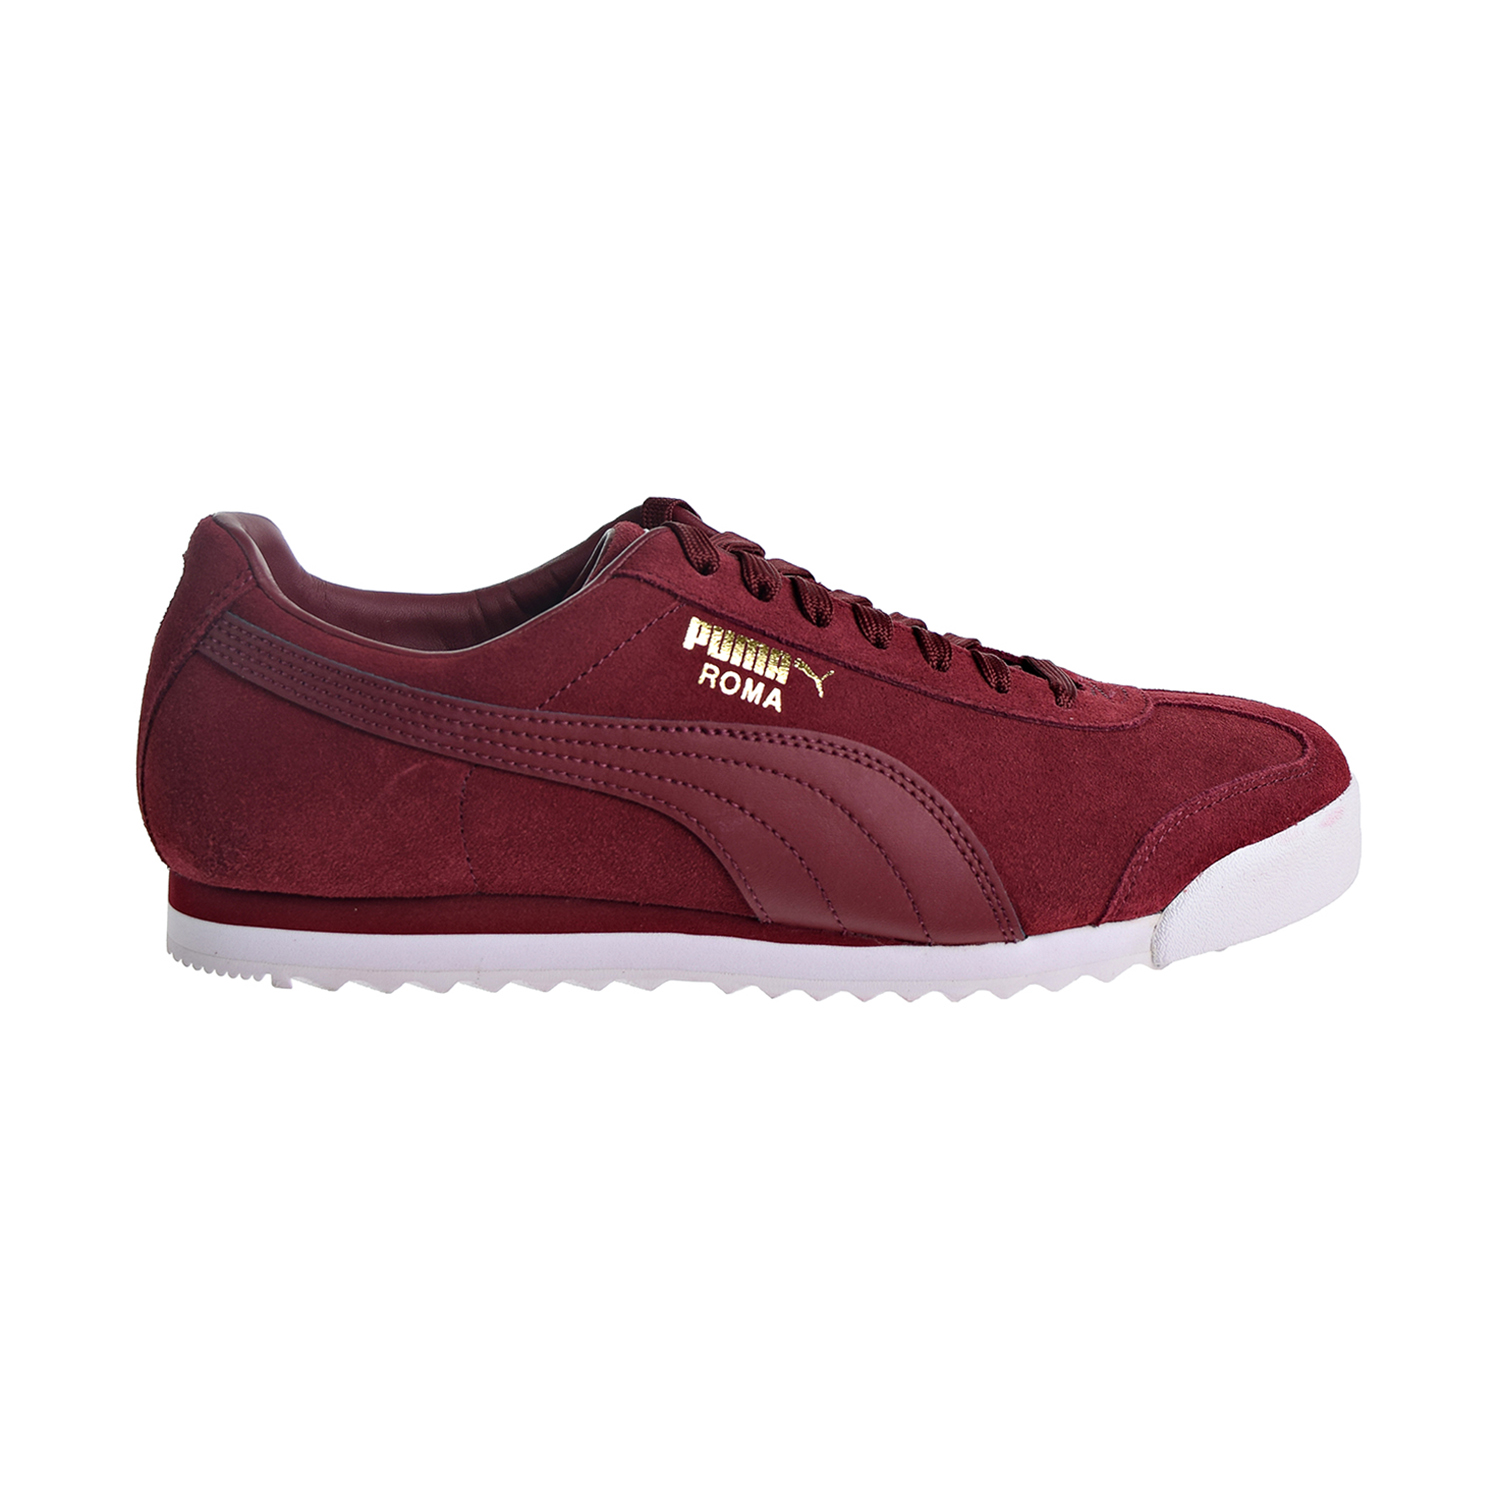 Puma Roma Suede Men s Shoes Pomegranate 365437-09  6209a3750